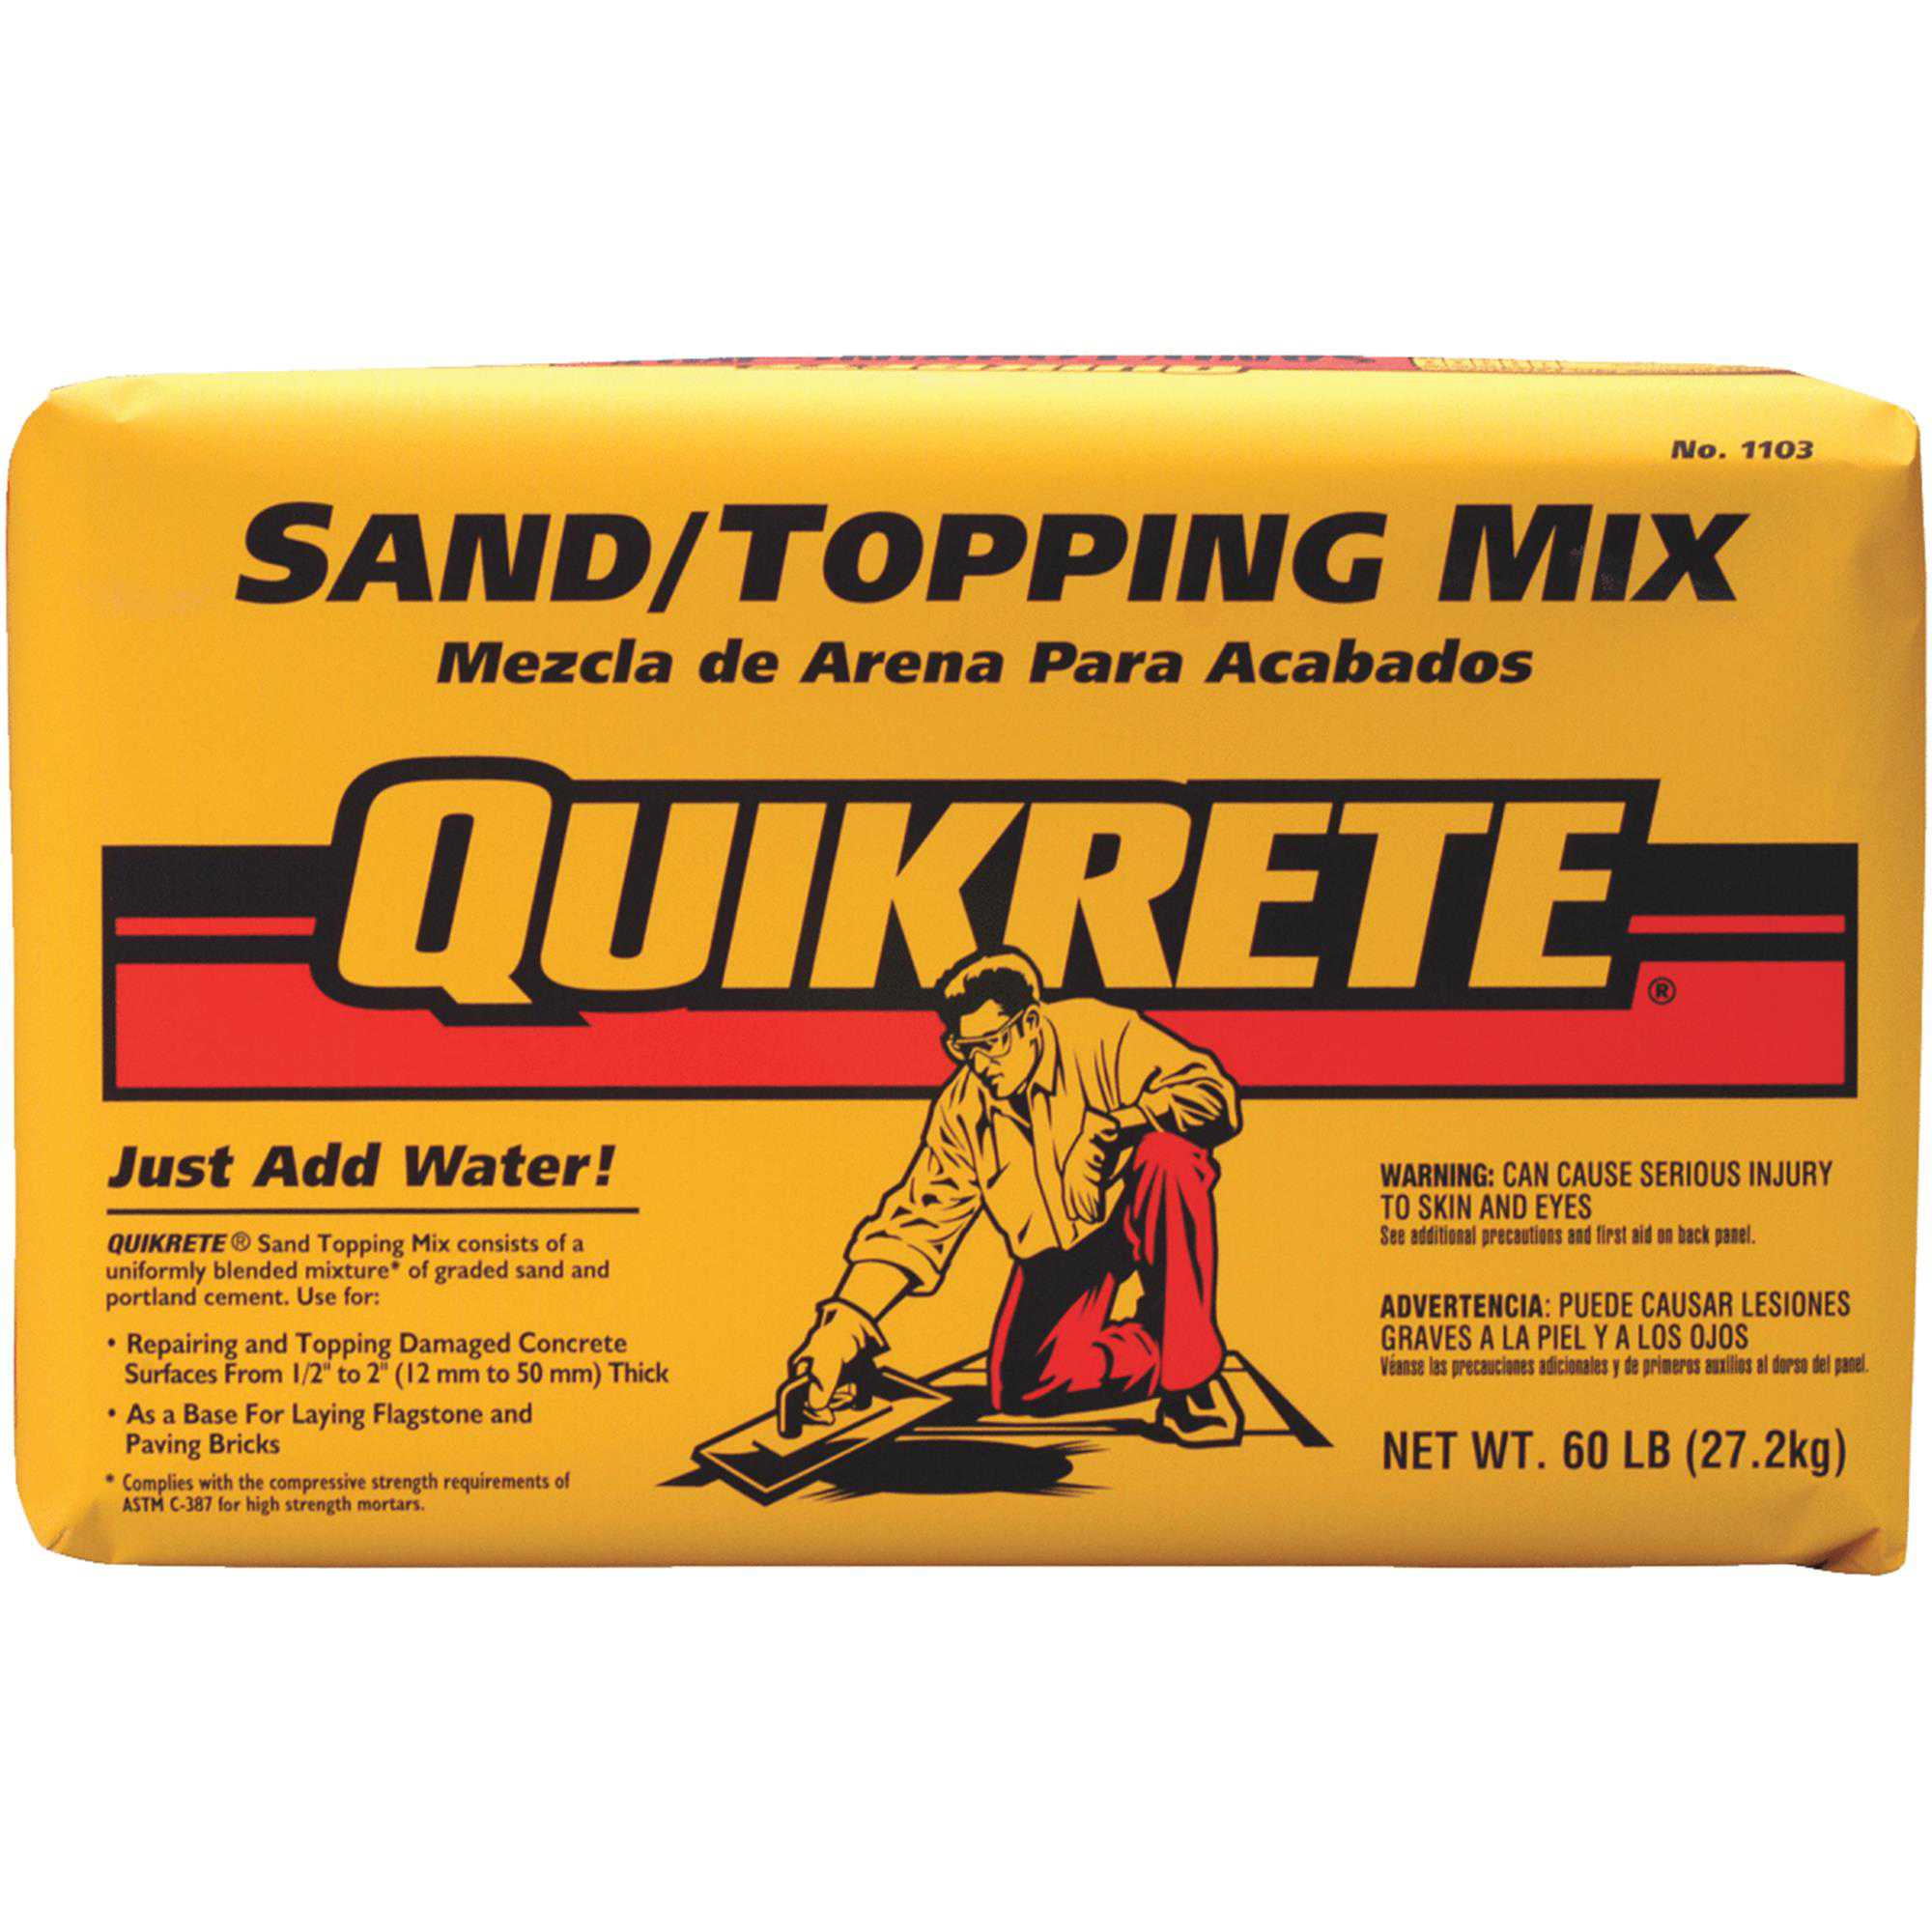 Quikrete Sand (Topping) Mix